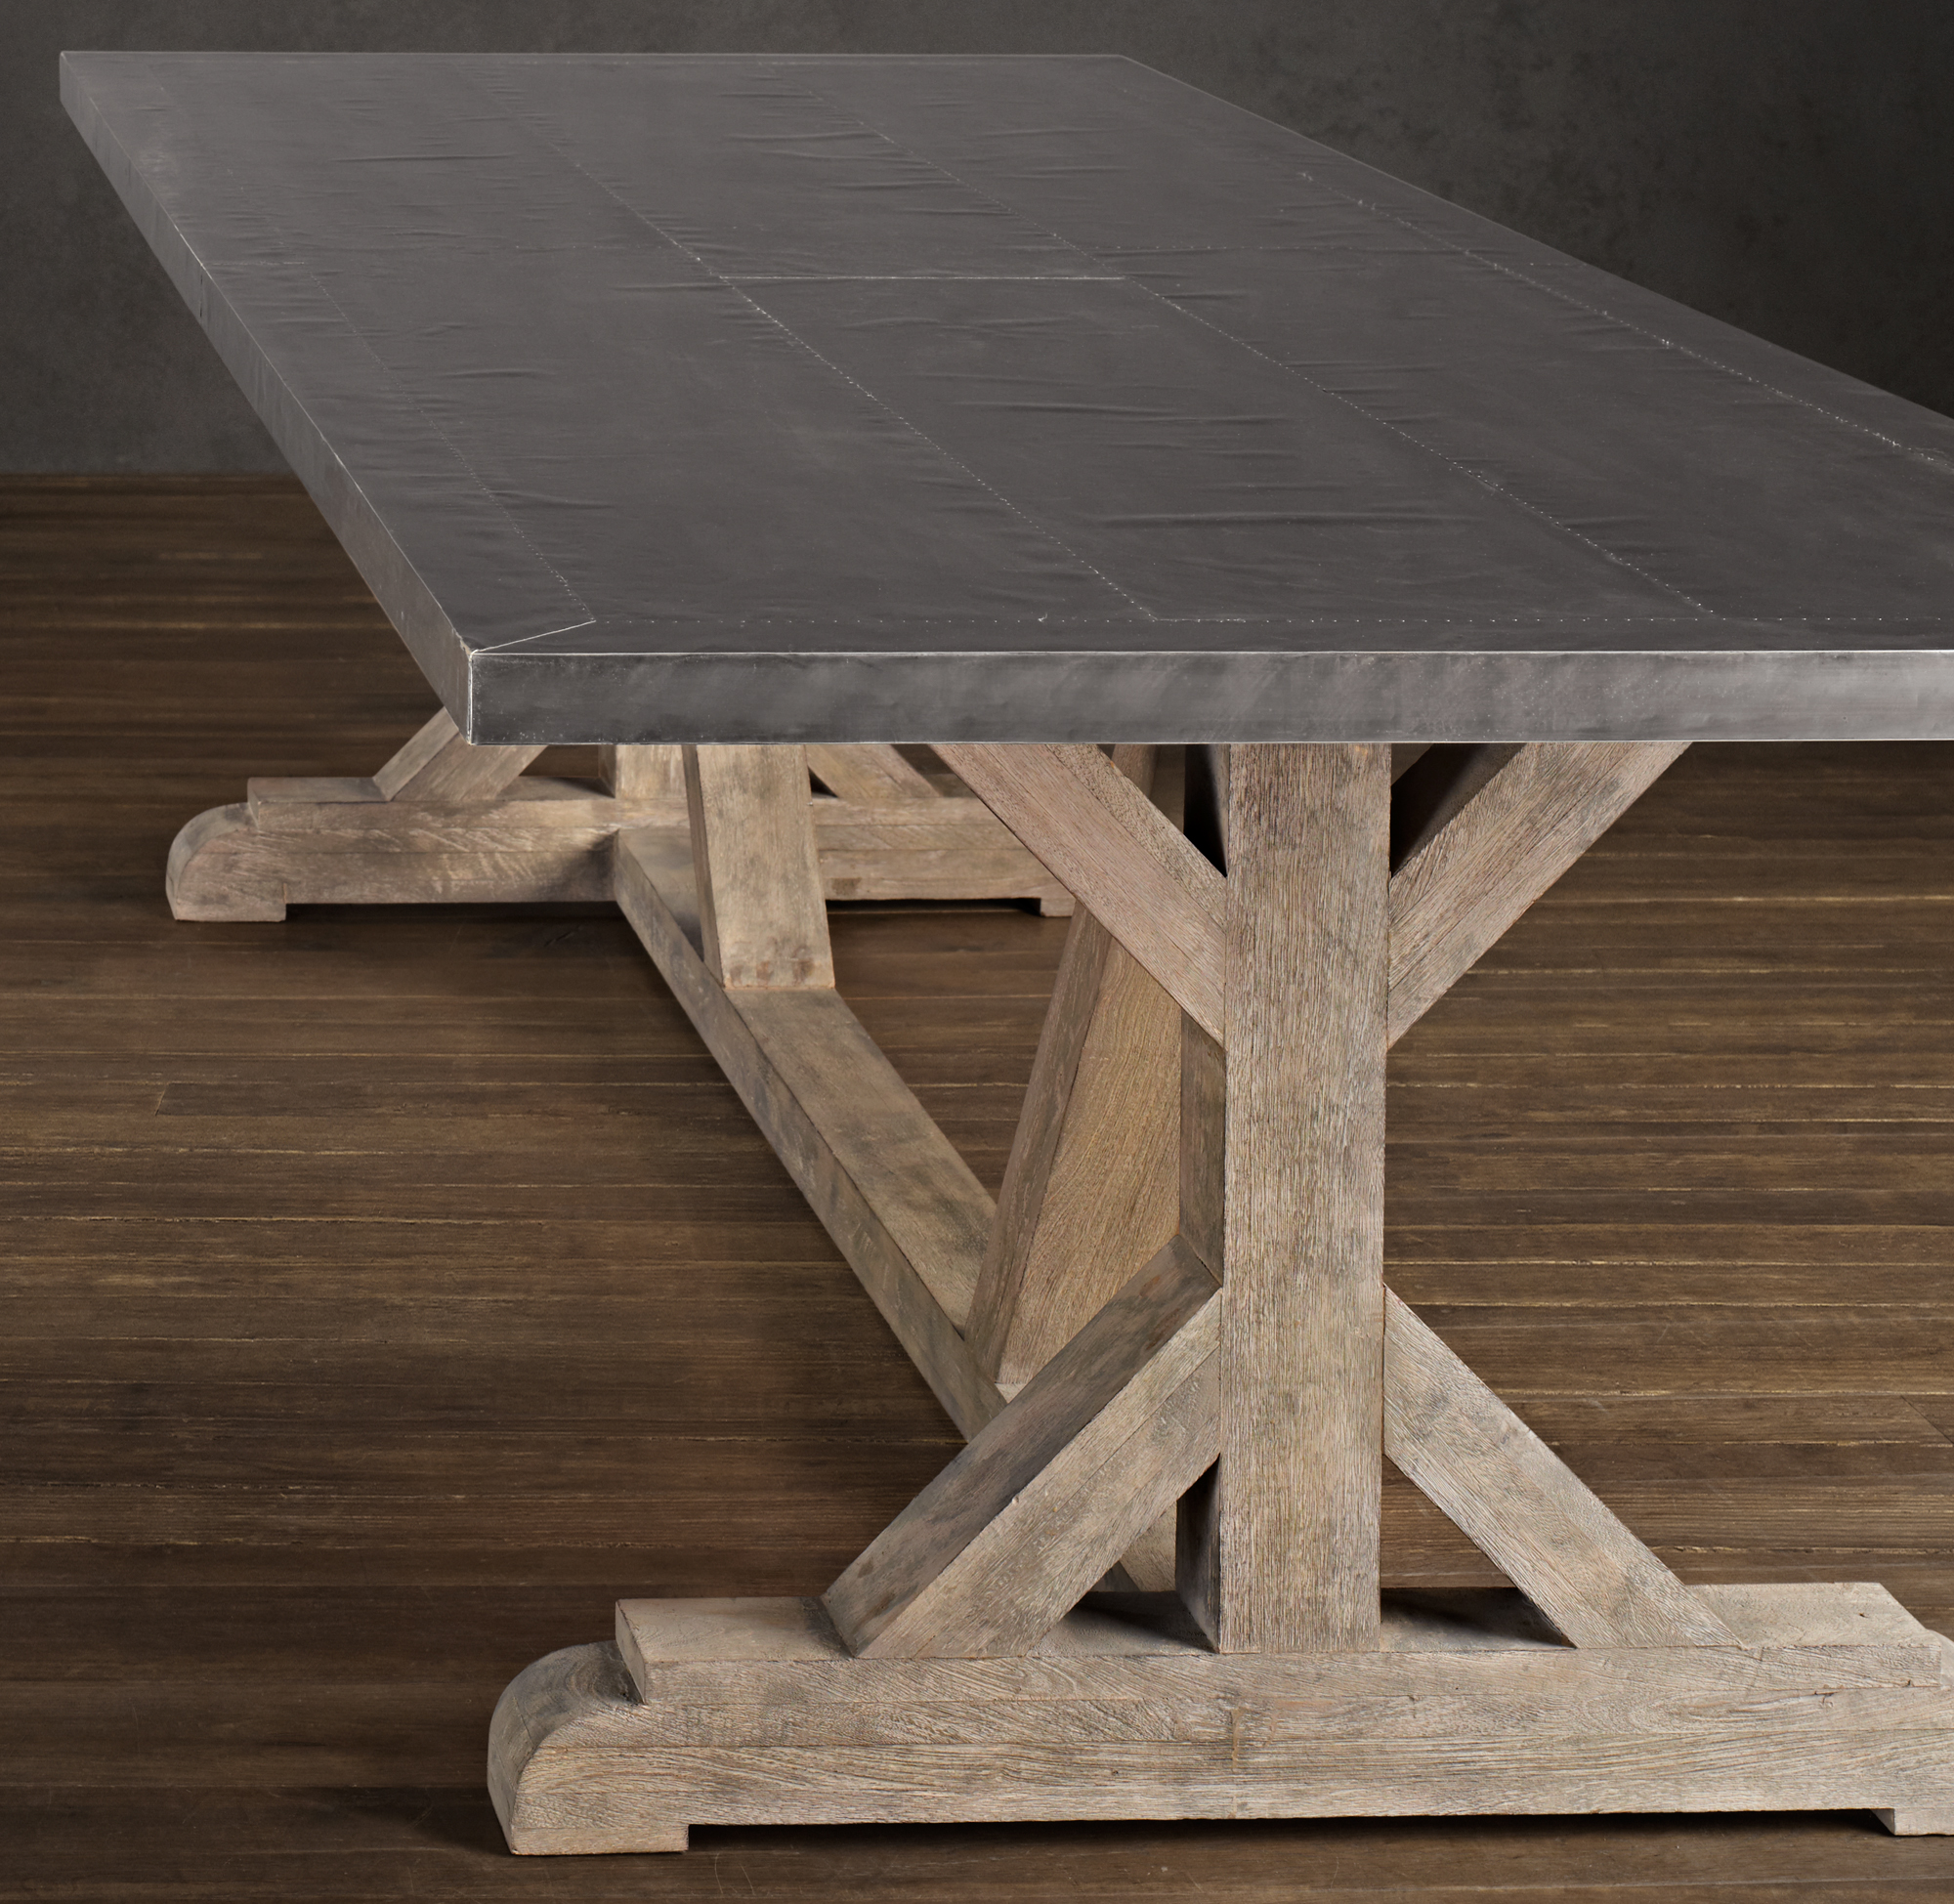 zinc top dining table large railroad tie dining table restoration hardware recalls metal top dining tables due to risk of